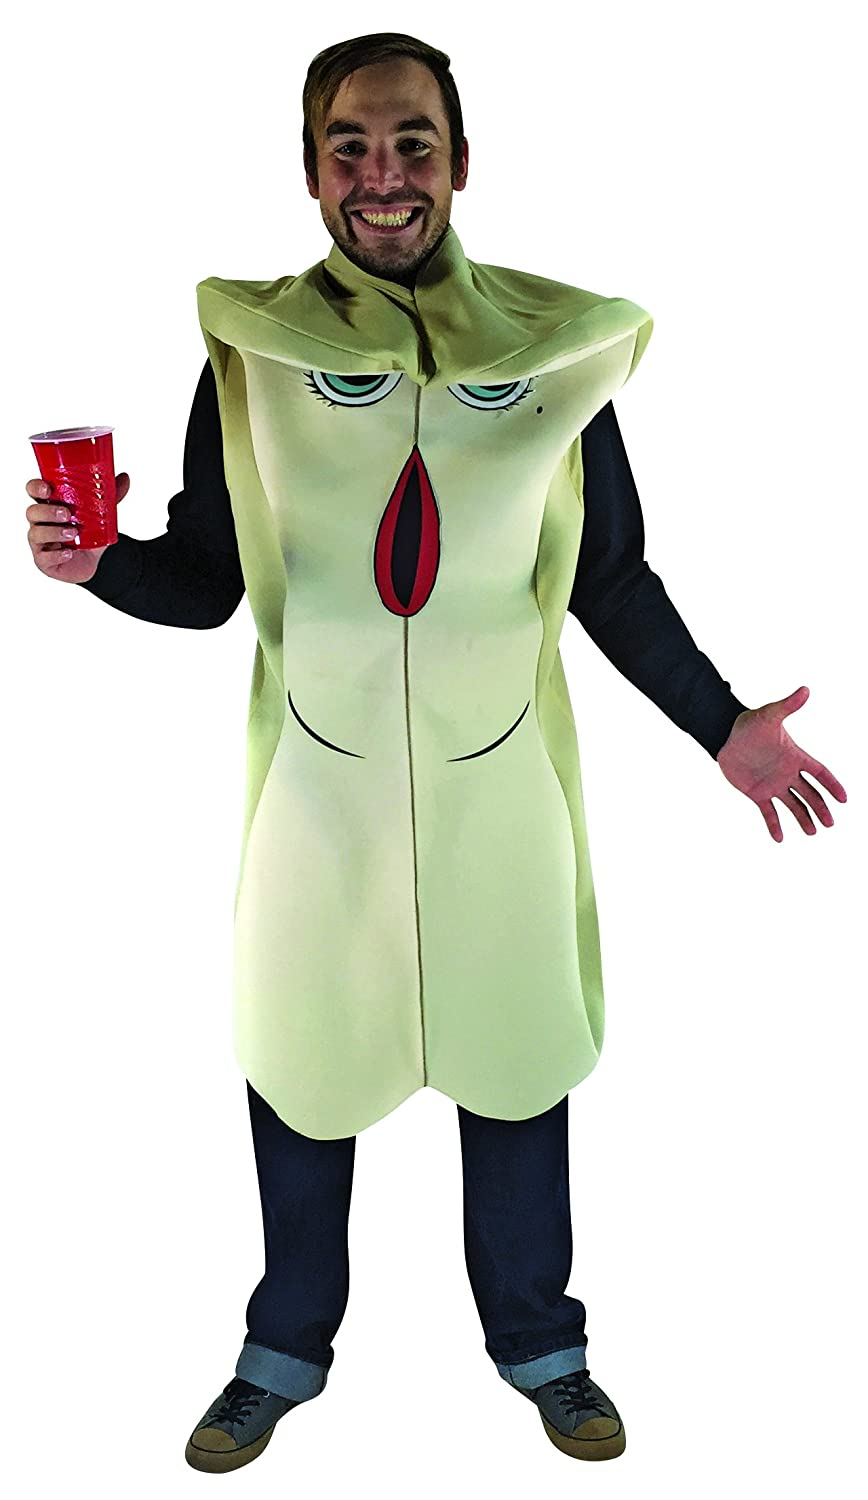 d951b0a295b Amazon.com  Rasta Imposta Sausage Party - Brenda Bun Costume Tan  Clothing